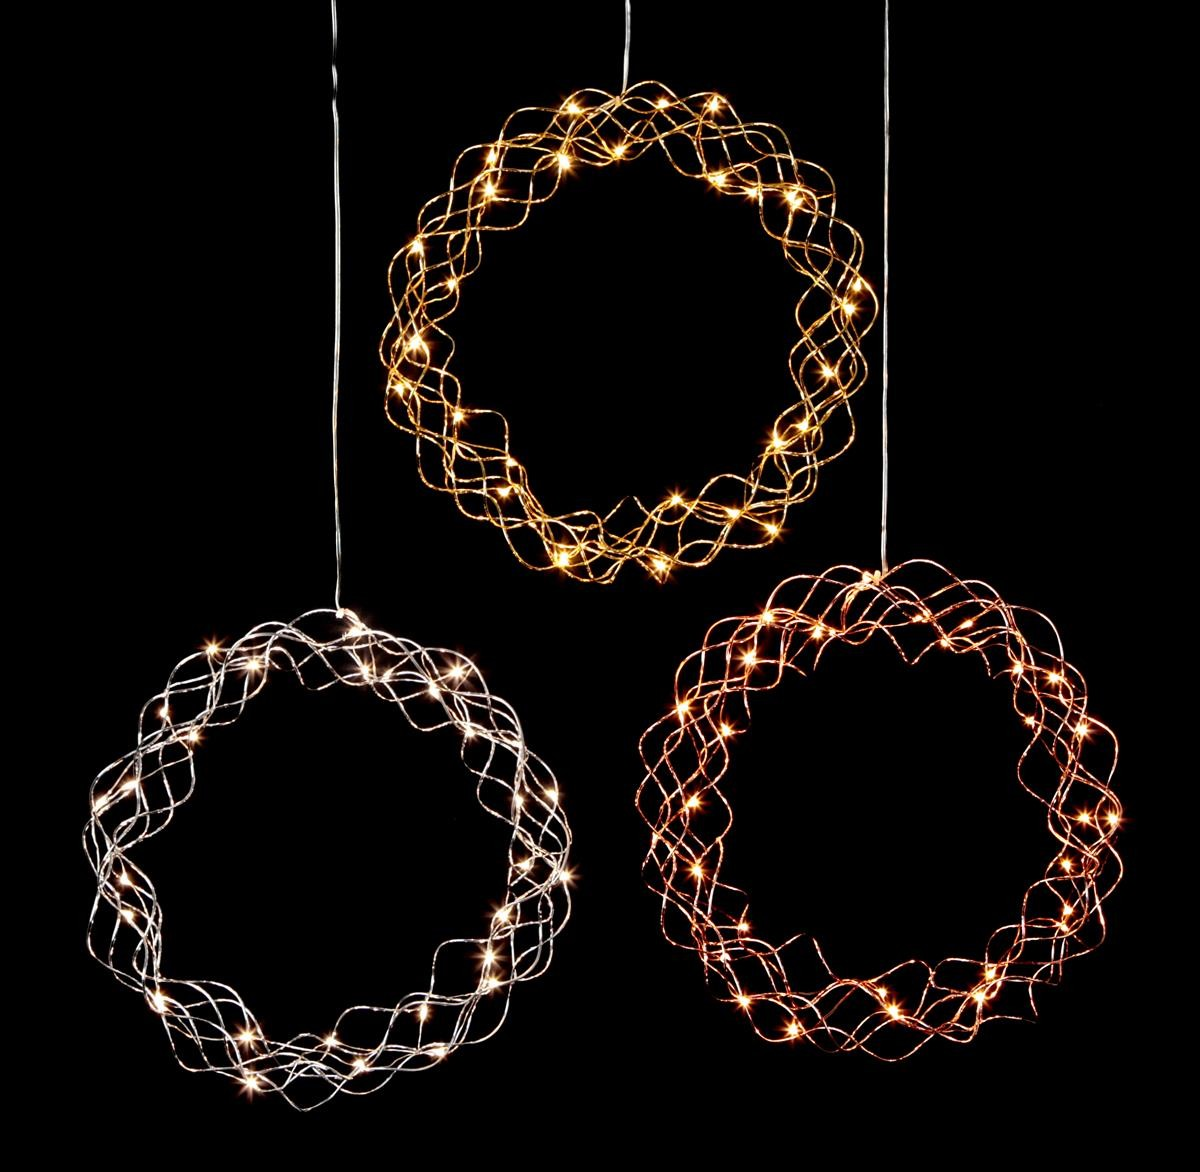 LED-Kranz Curly - 30 warmweisse LED - D: 30cm - Material: Metall - gold